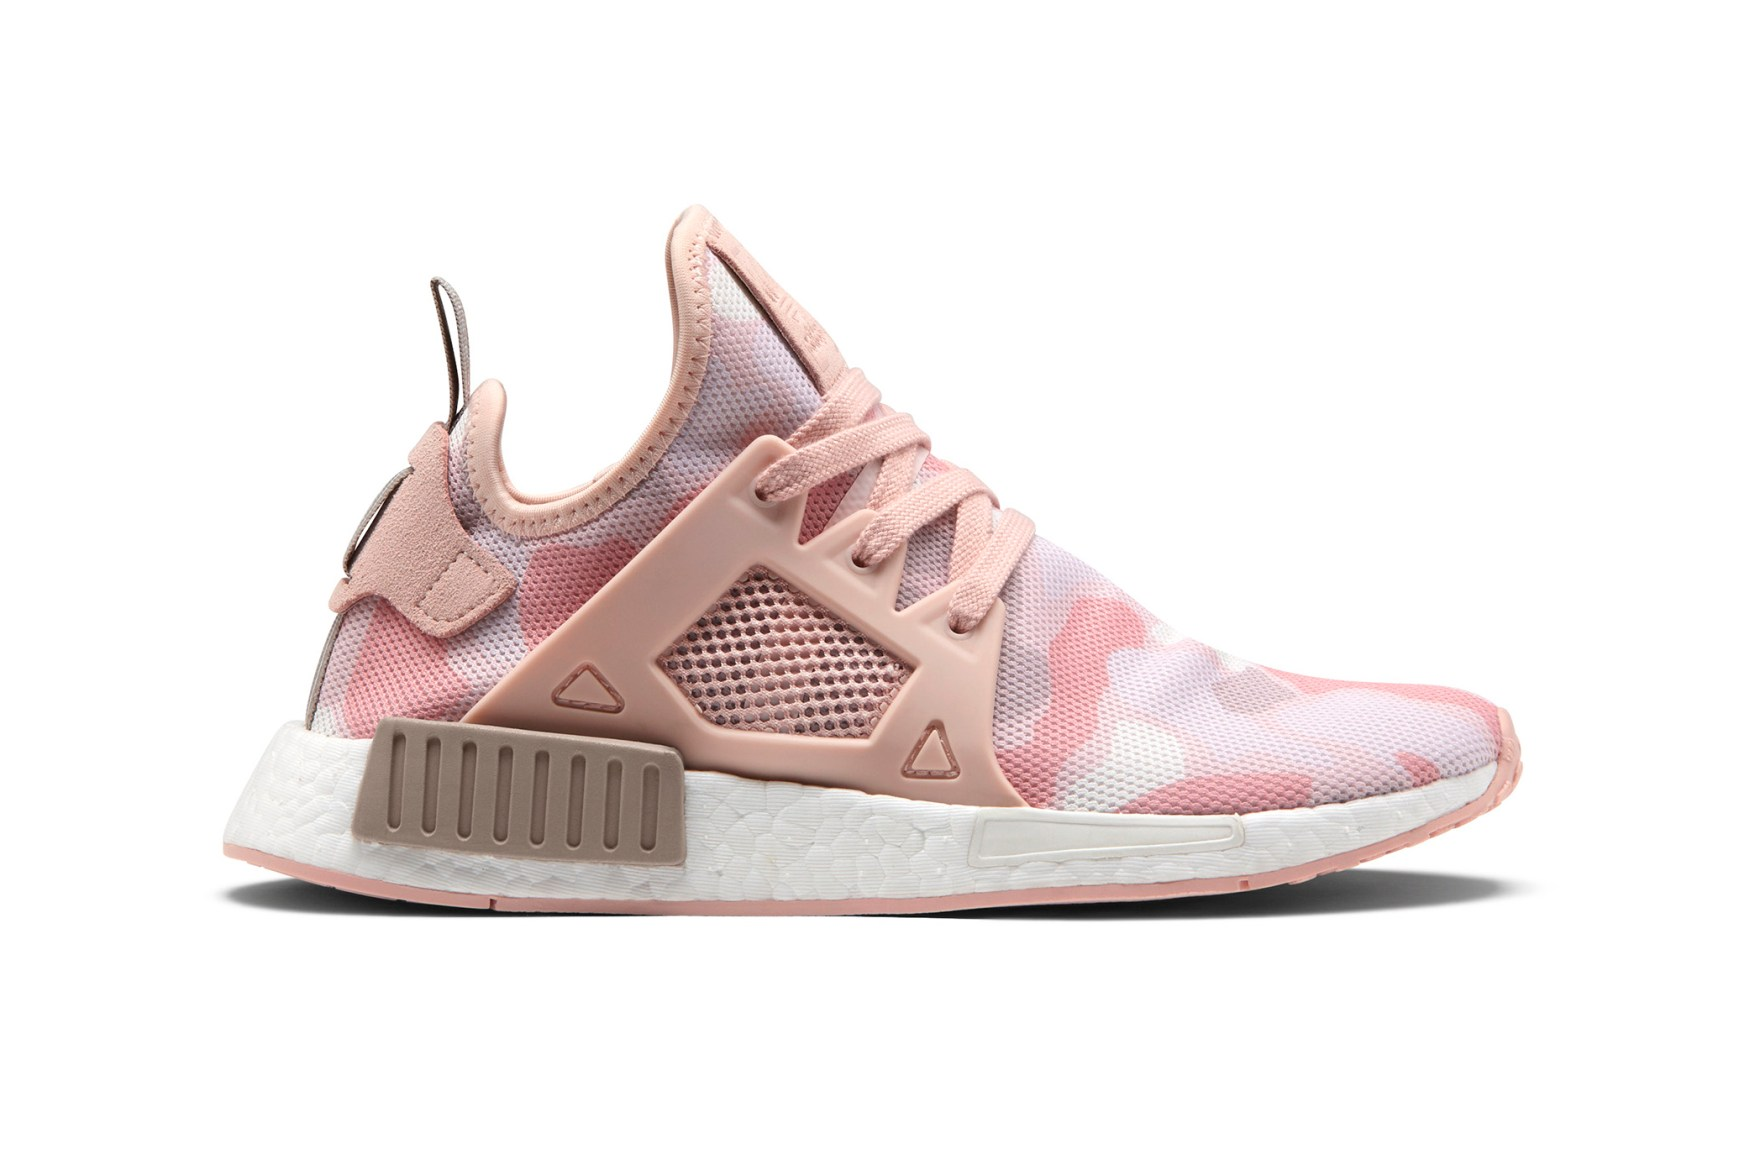 adidas nmd xr1 S32218 Sneak art Cheap Adidas NMD XR1 Shoes